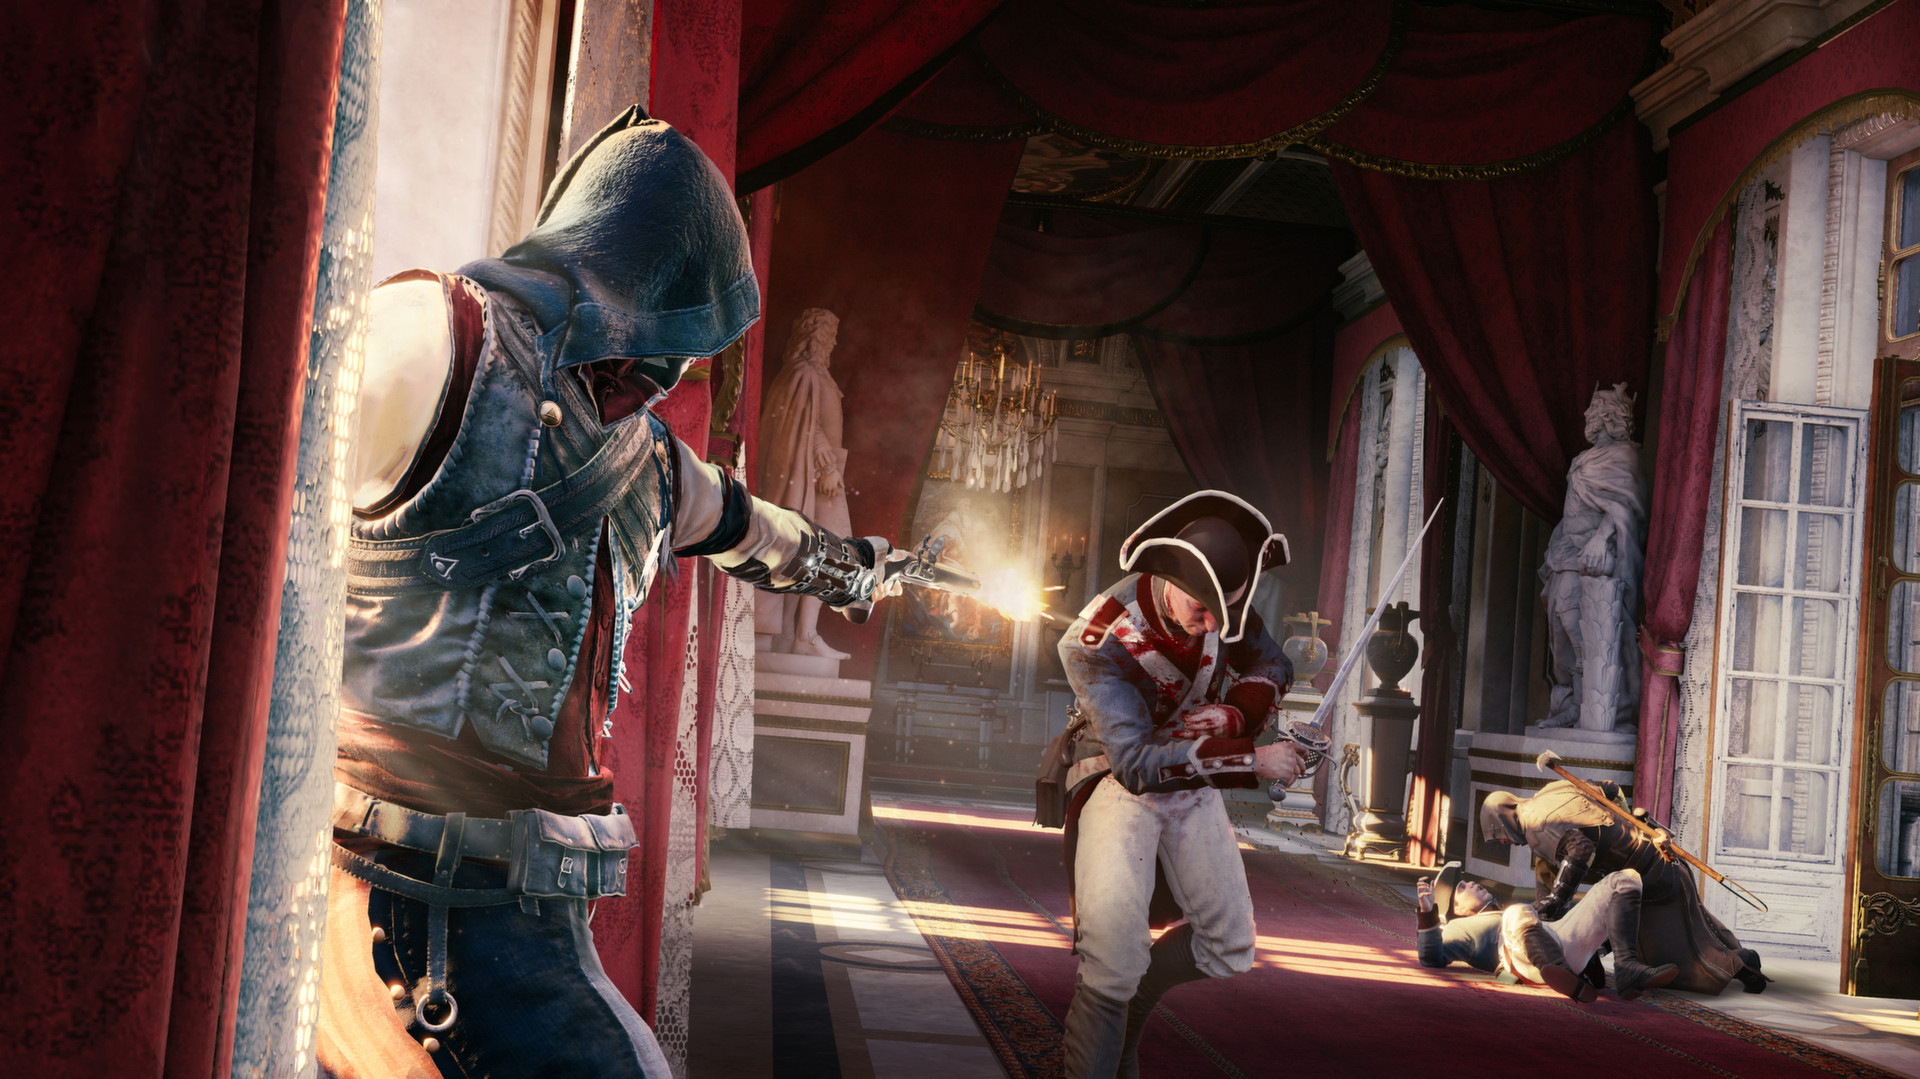 download assassin's creed unity complete edition cd key for pc playstation 4 ps3 xbox one 360 steam origin pc co-op online addon add-on patch updates private dedicated sever copiapop diskokosmiko